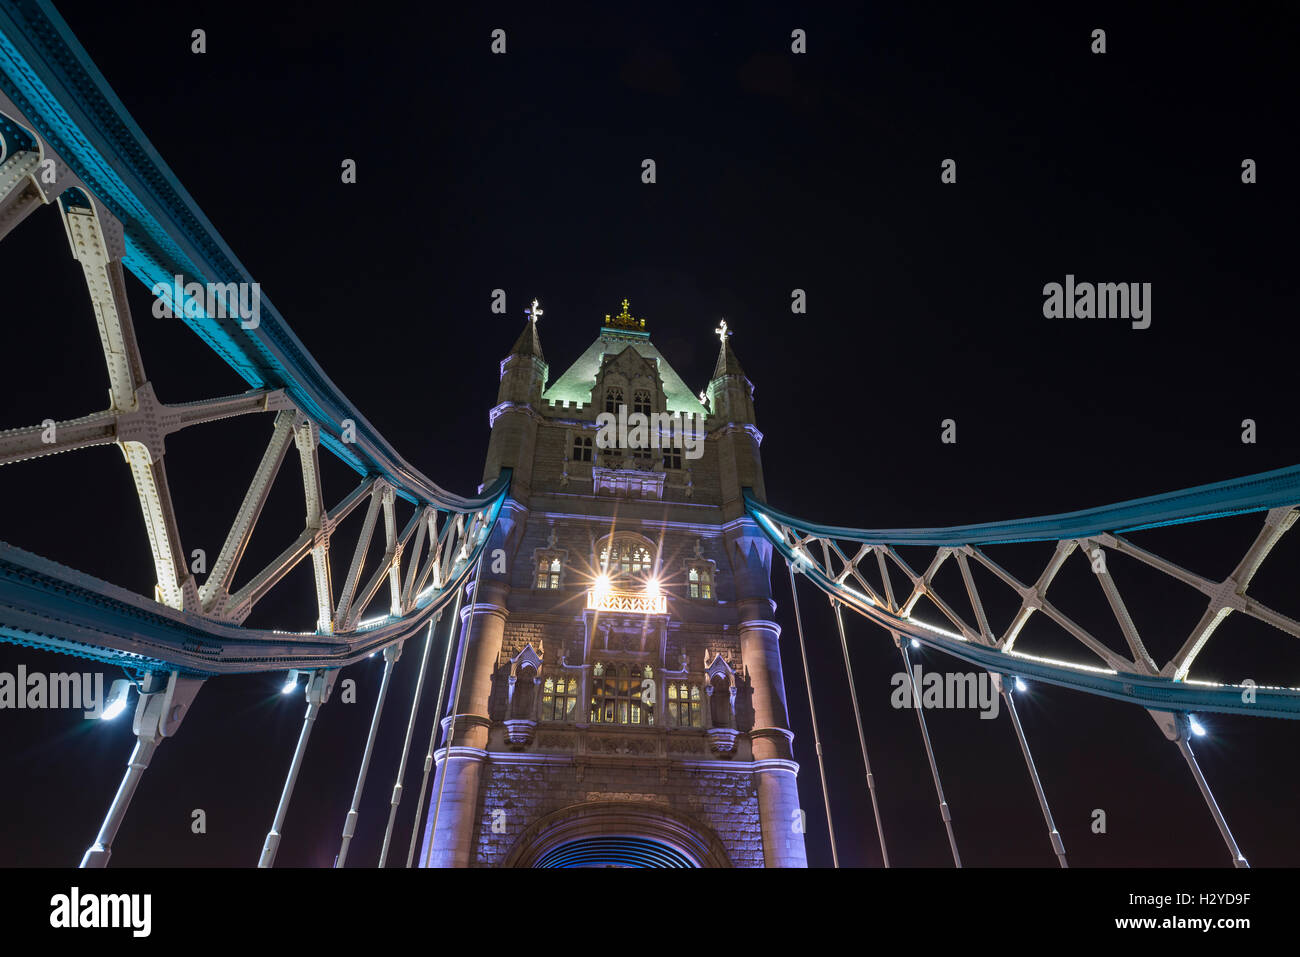 Looking up between illuminated steel chain elements to one tower of the Tower Bridge over the River Thames against Stock Photo